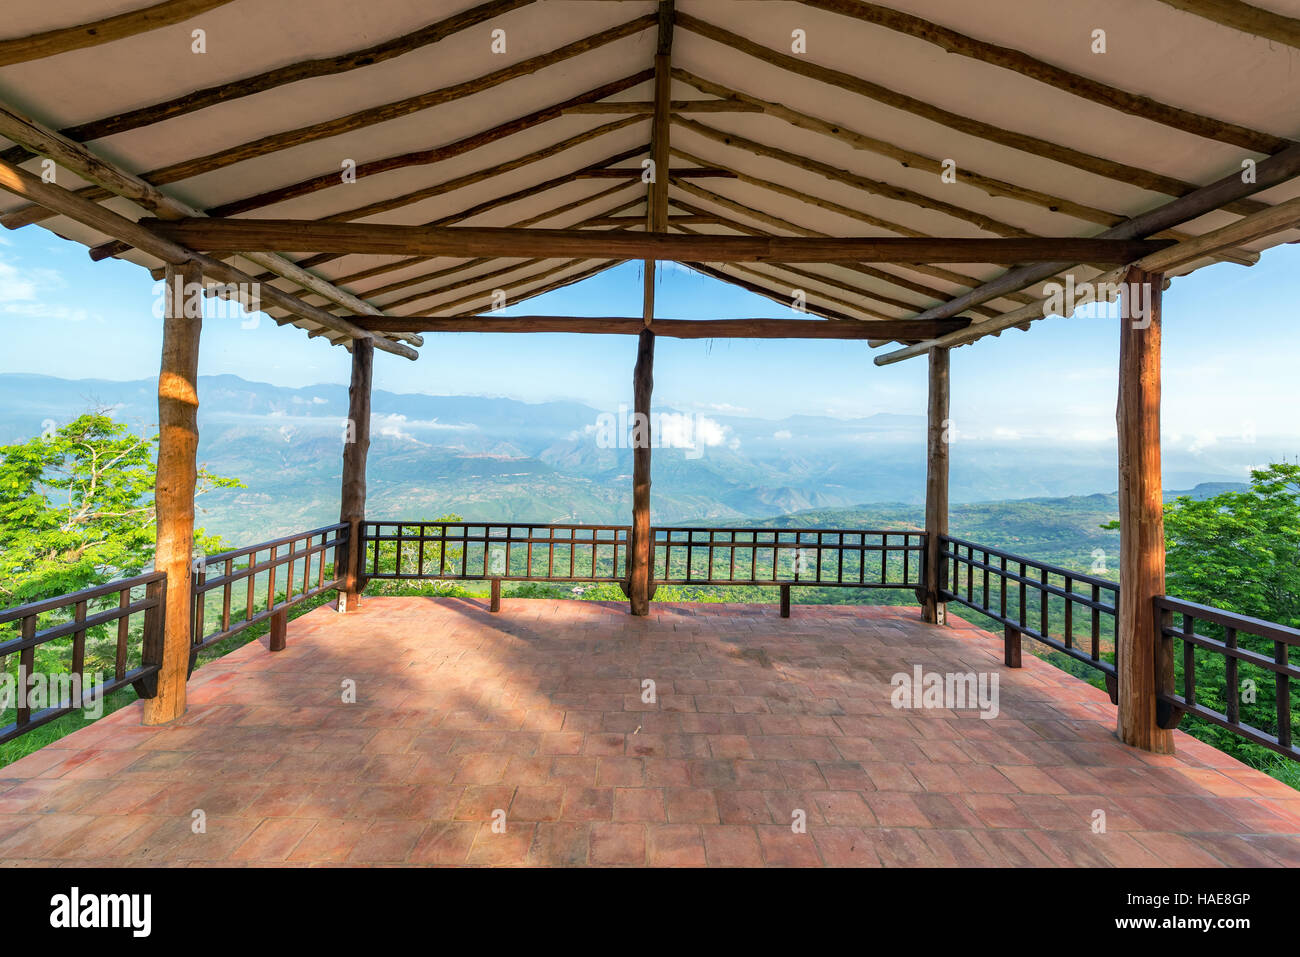 Viewpoint in Barichara, Colombia overlooking the valley below the town - Stock Image